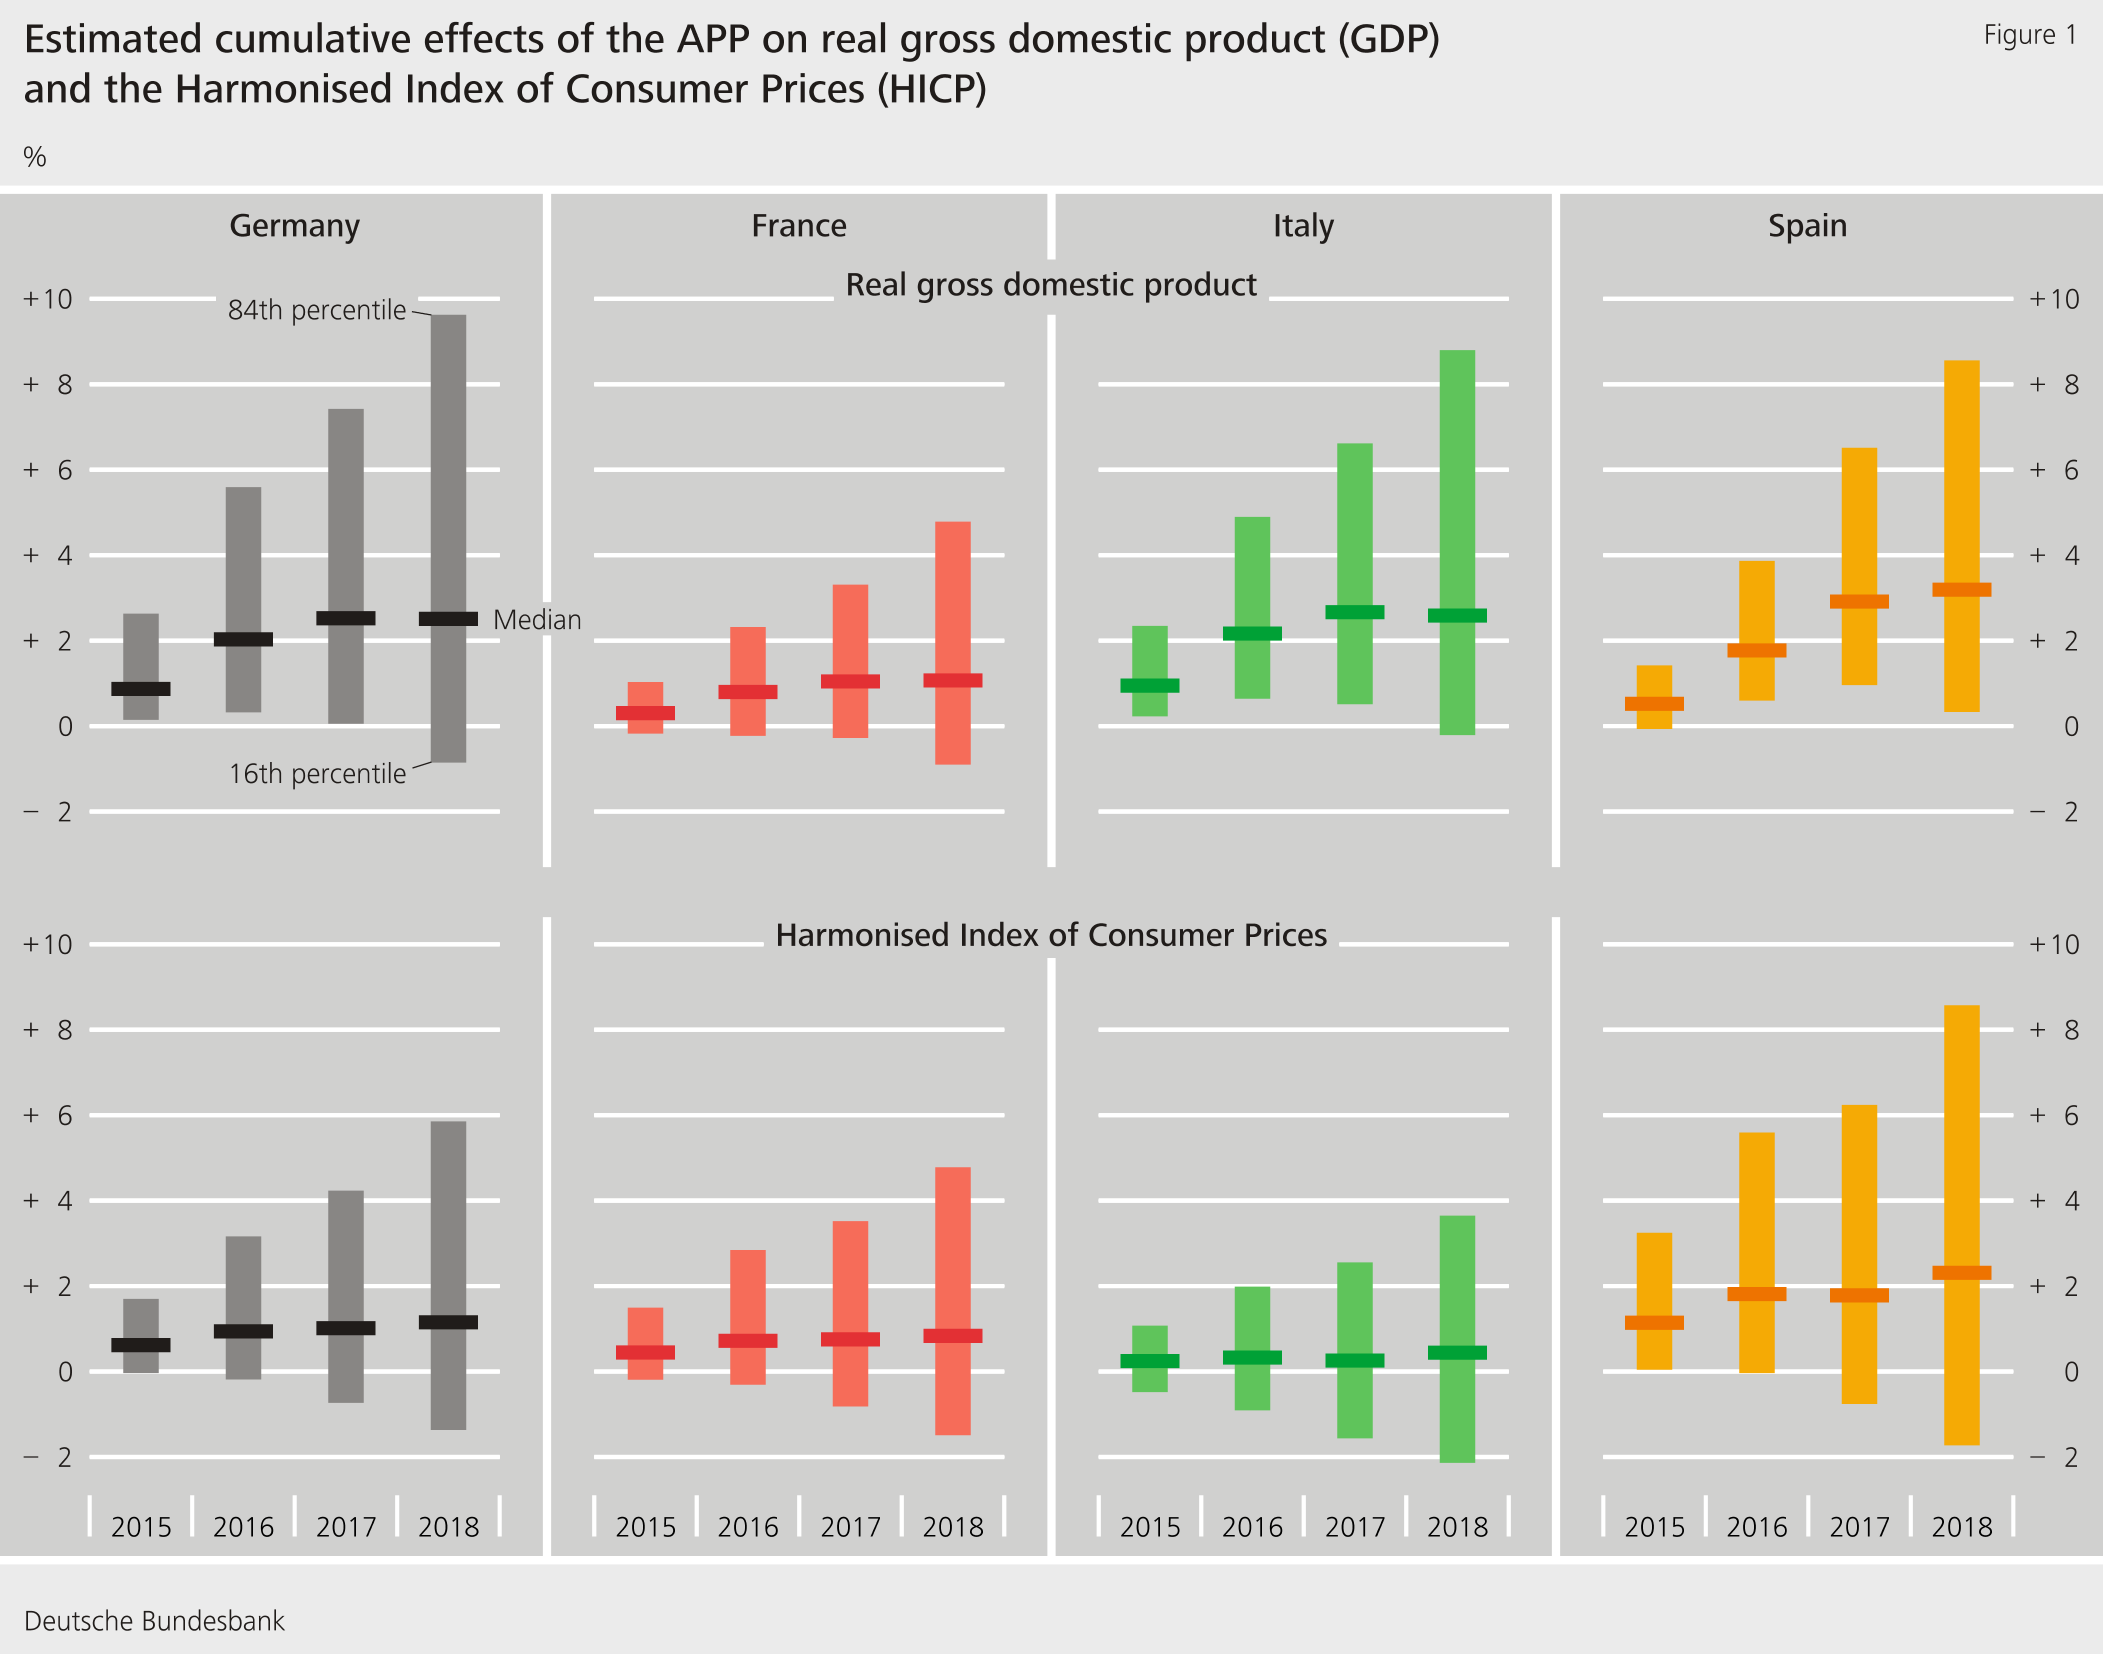 Figure 1: Estimated cumulative effects of the APP on real gross domestic product (GDP) and the Harmonised Index of Consumer Prices (HICP)